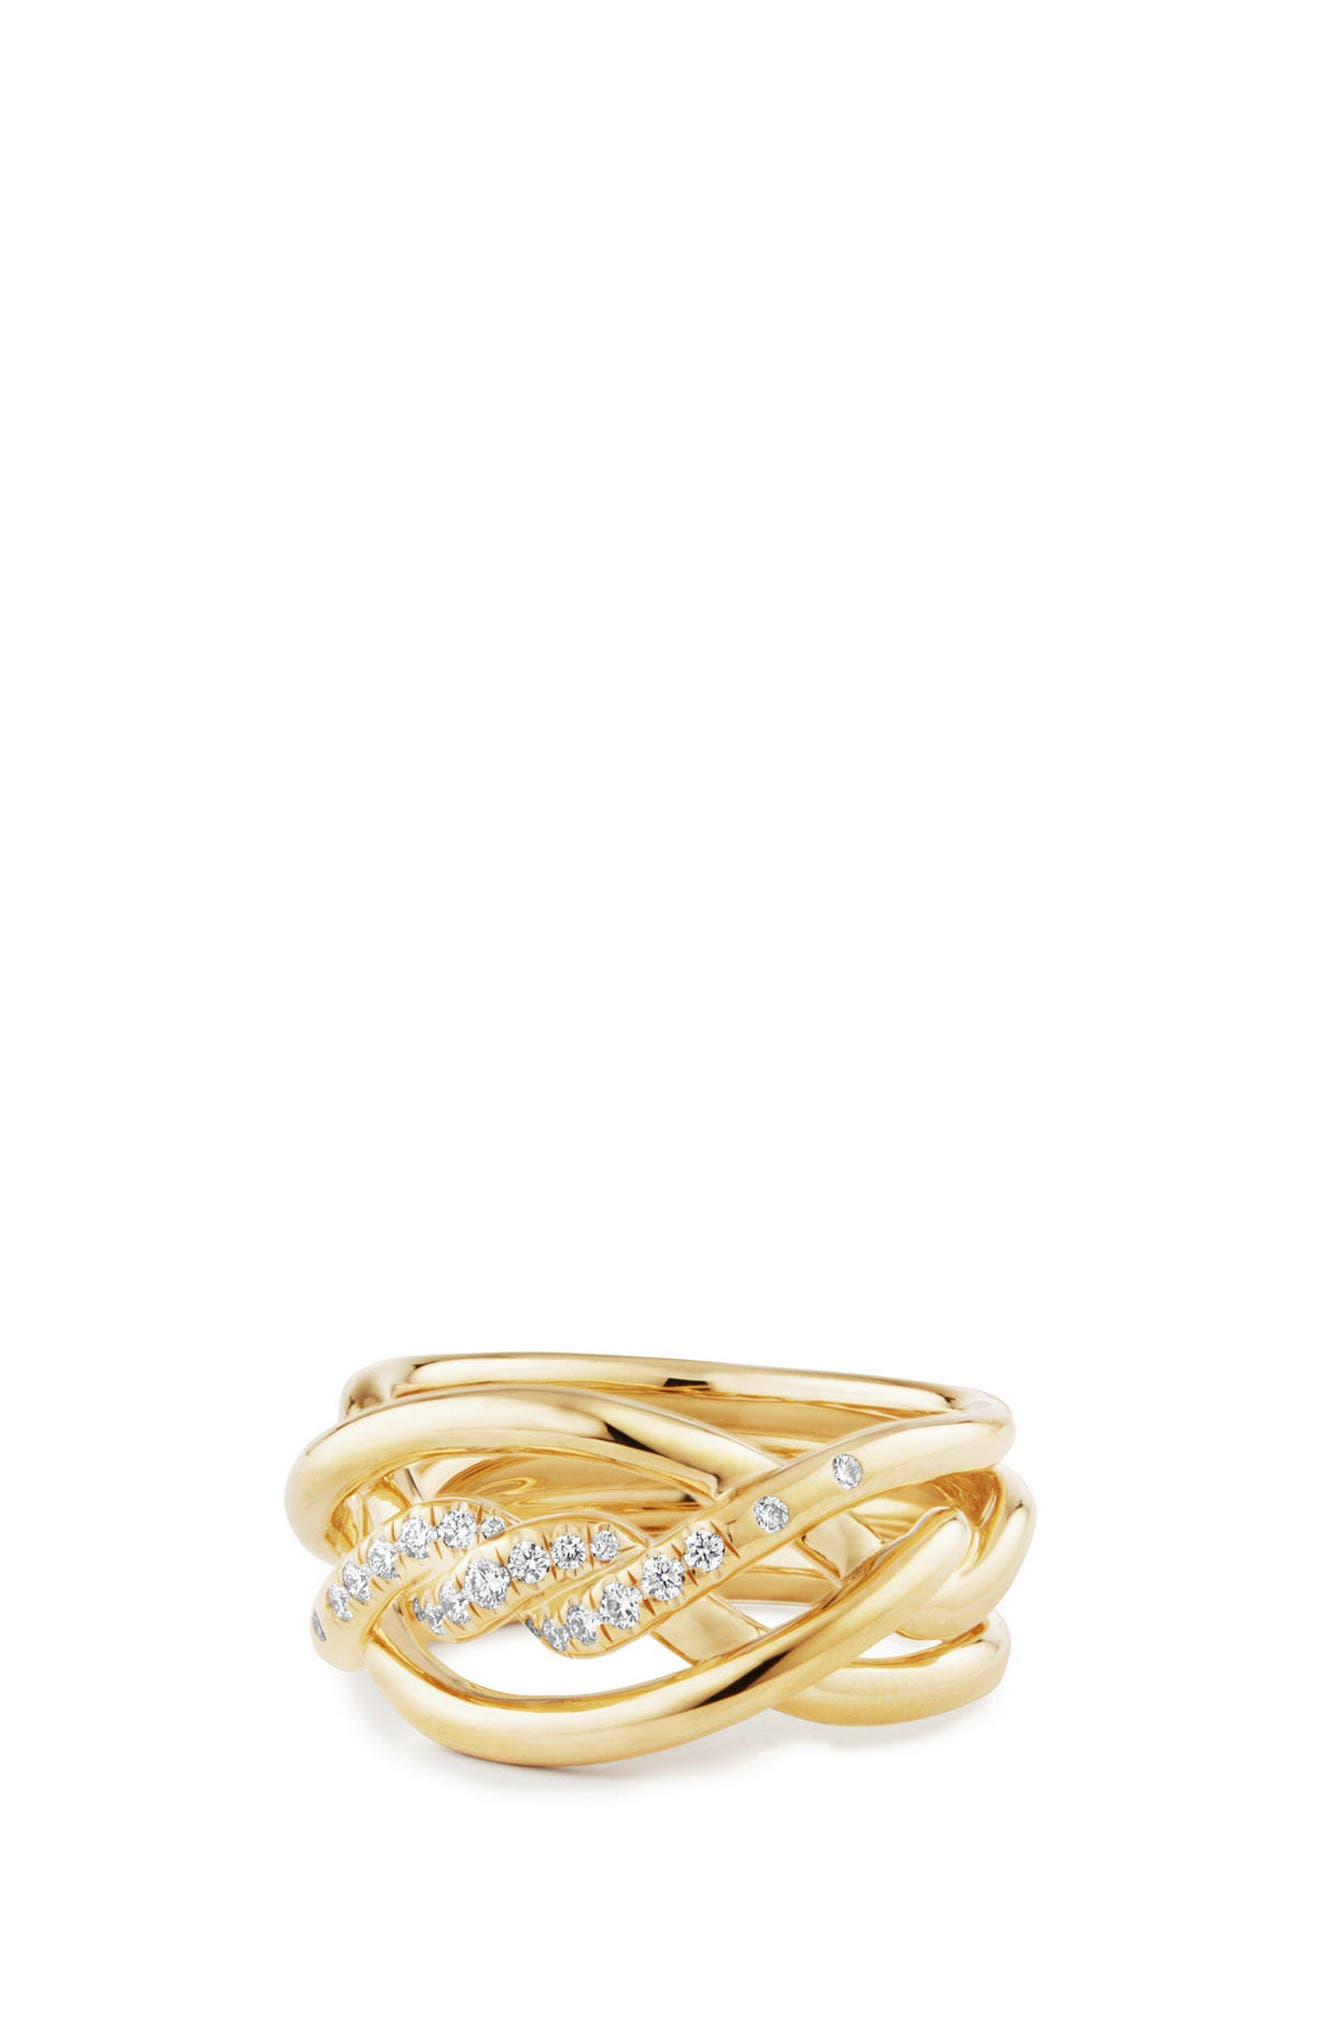 Main Image - David Yurman Continuance Ring with Diamonds in 18K Gold, 11.5mm